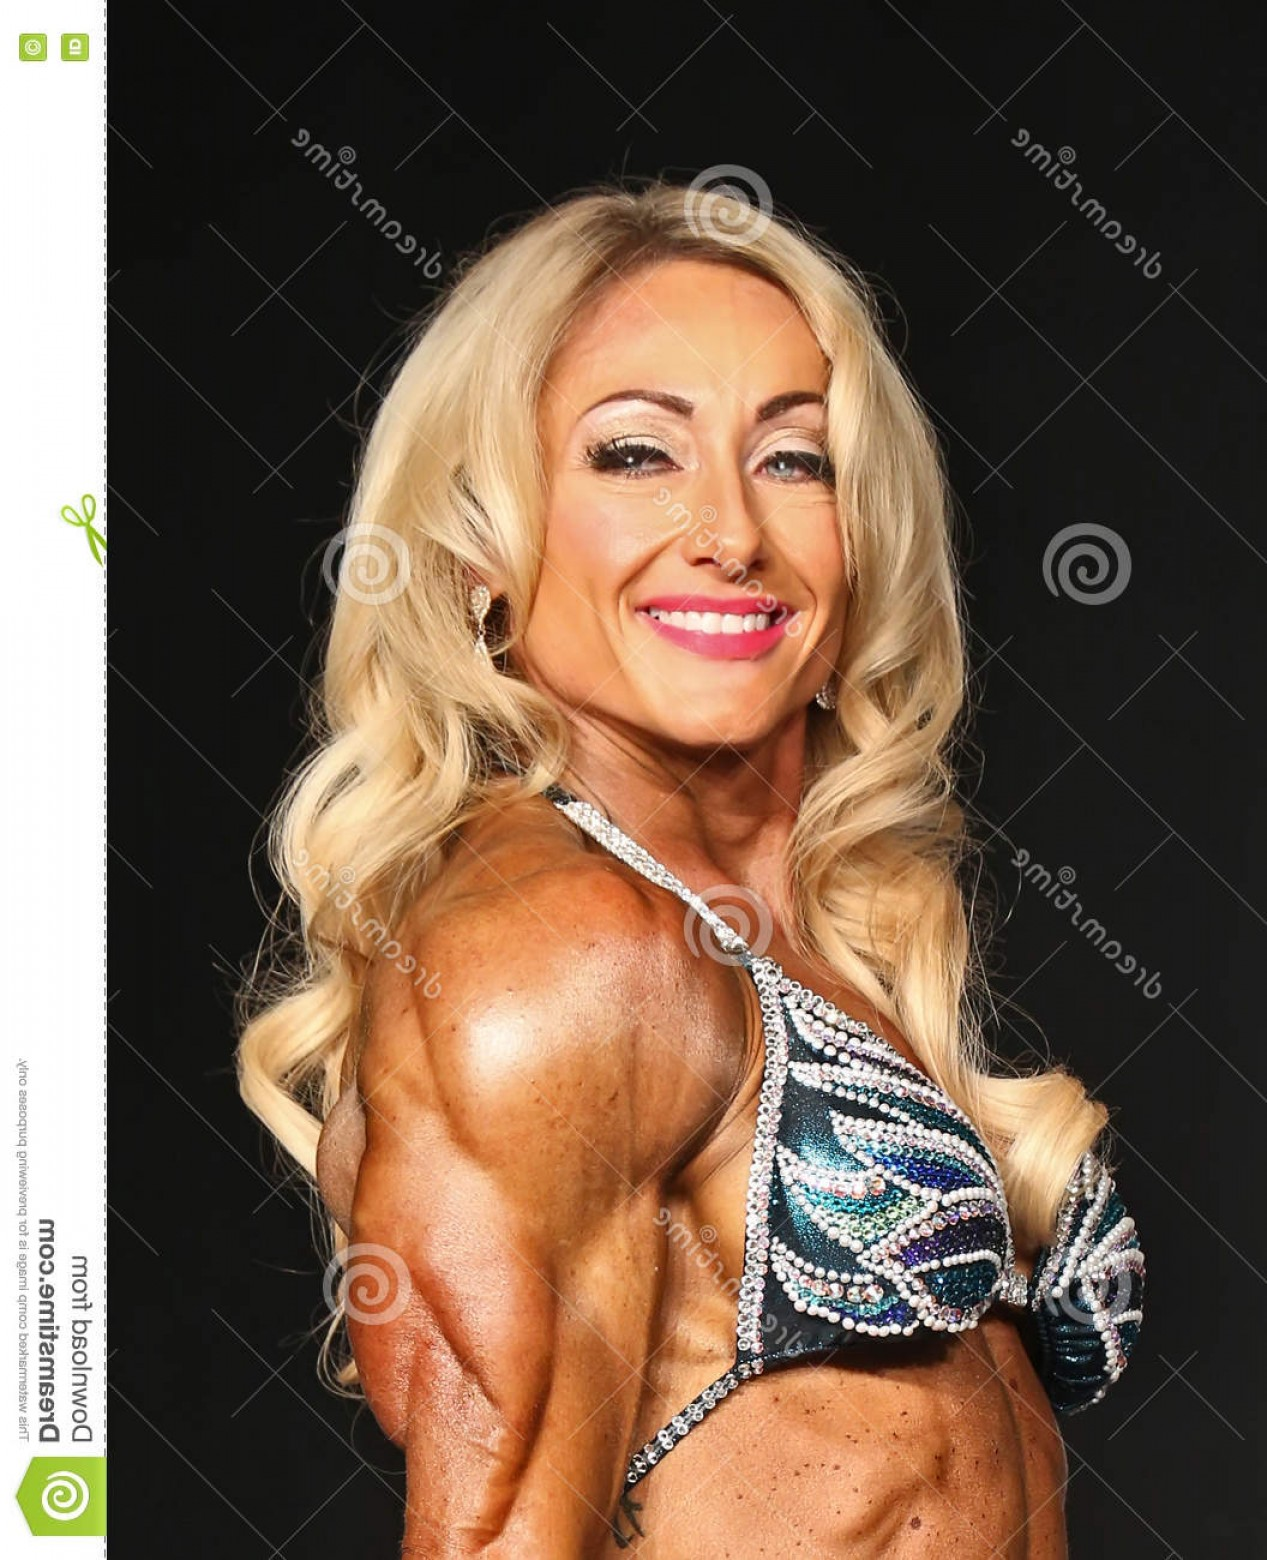 Vector Abstract Woman Bodybuilder Physique: Editorial Image Ripped Blonde Bodybuilder Beautiful Jill Diorio Flexes Powerful Defined Tricep Pose As Competes Women S Physique Image